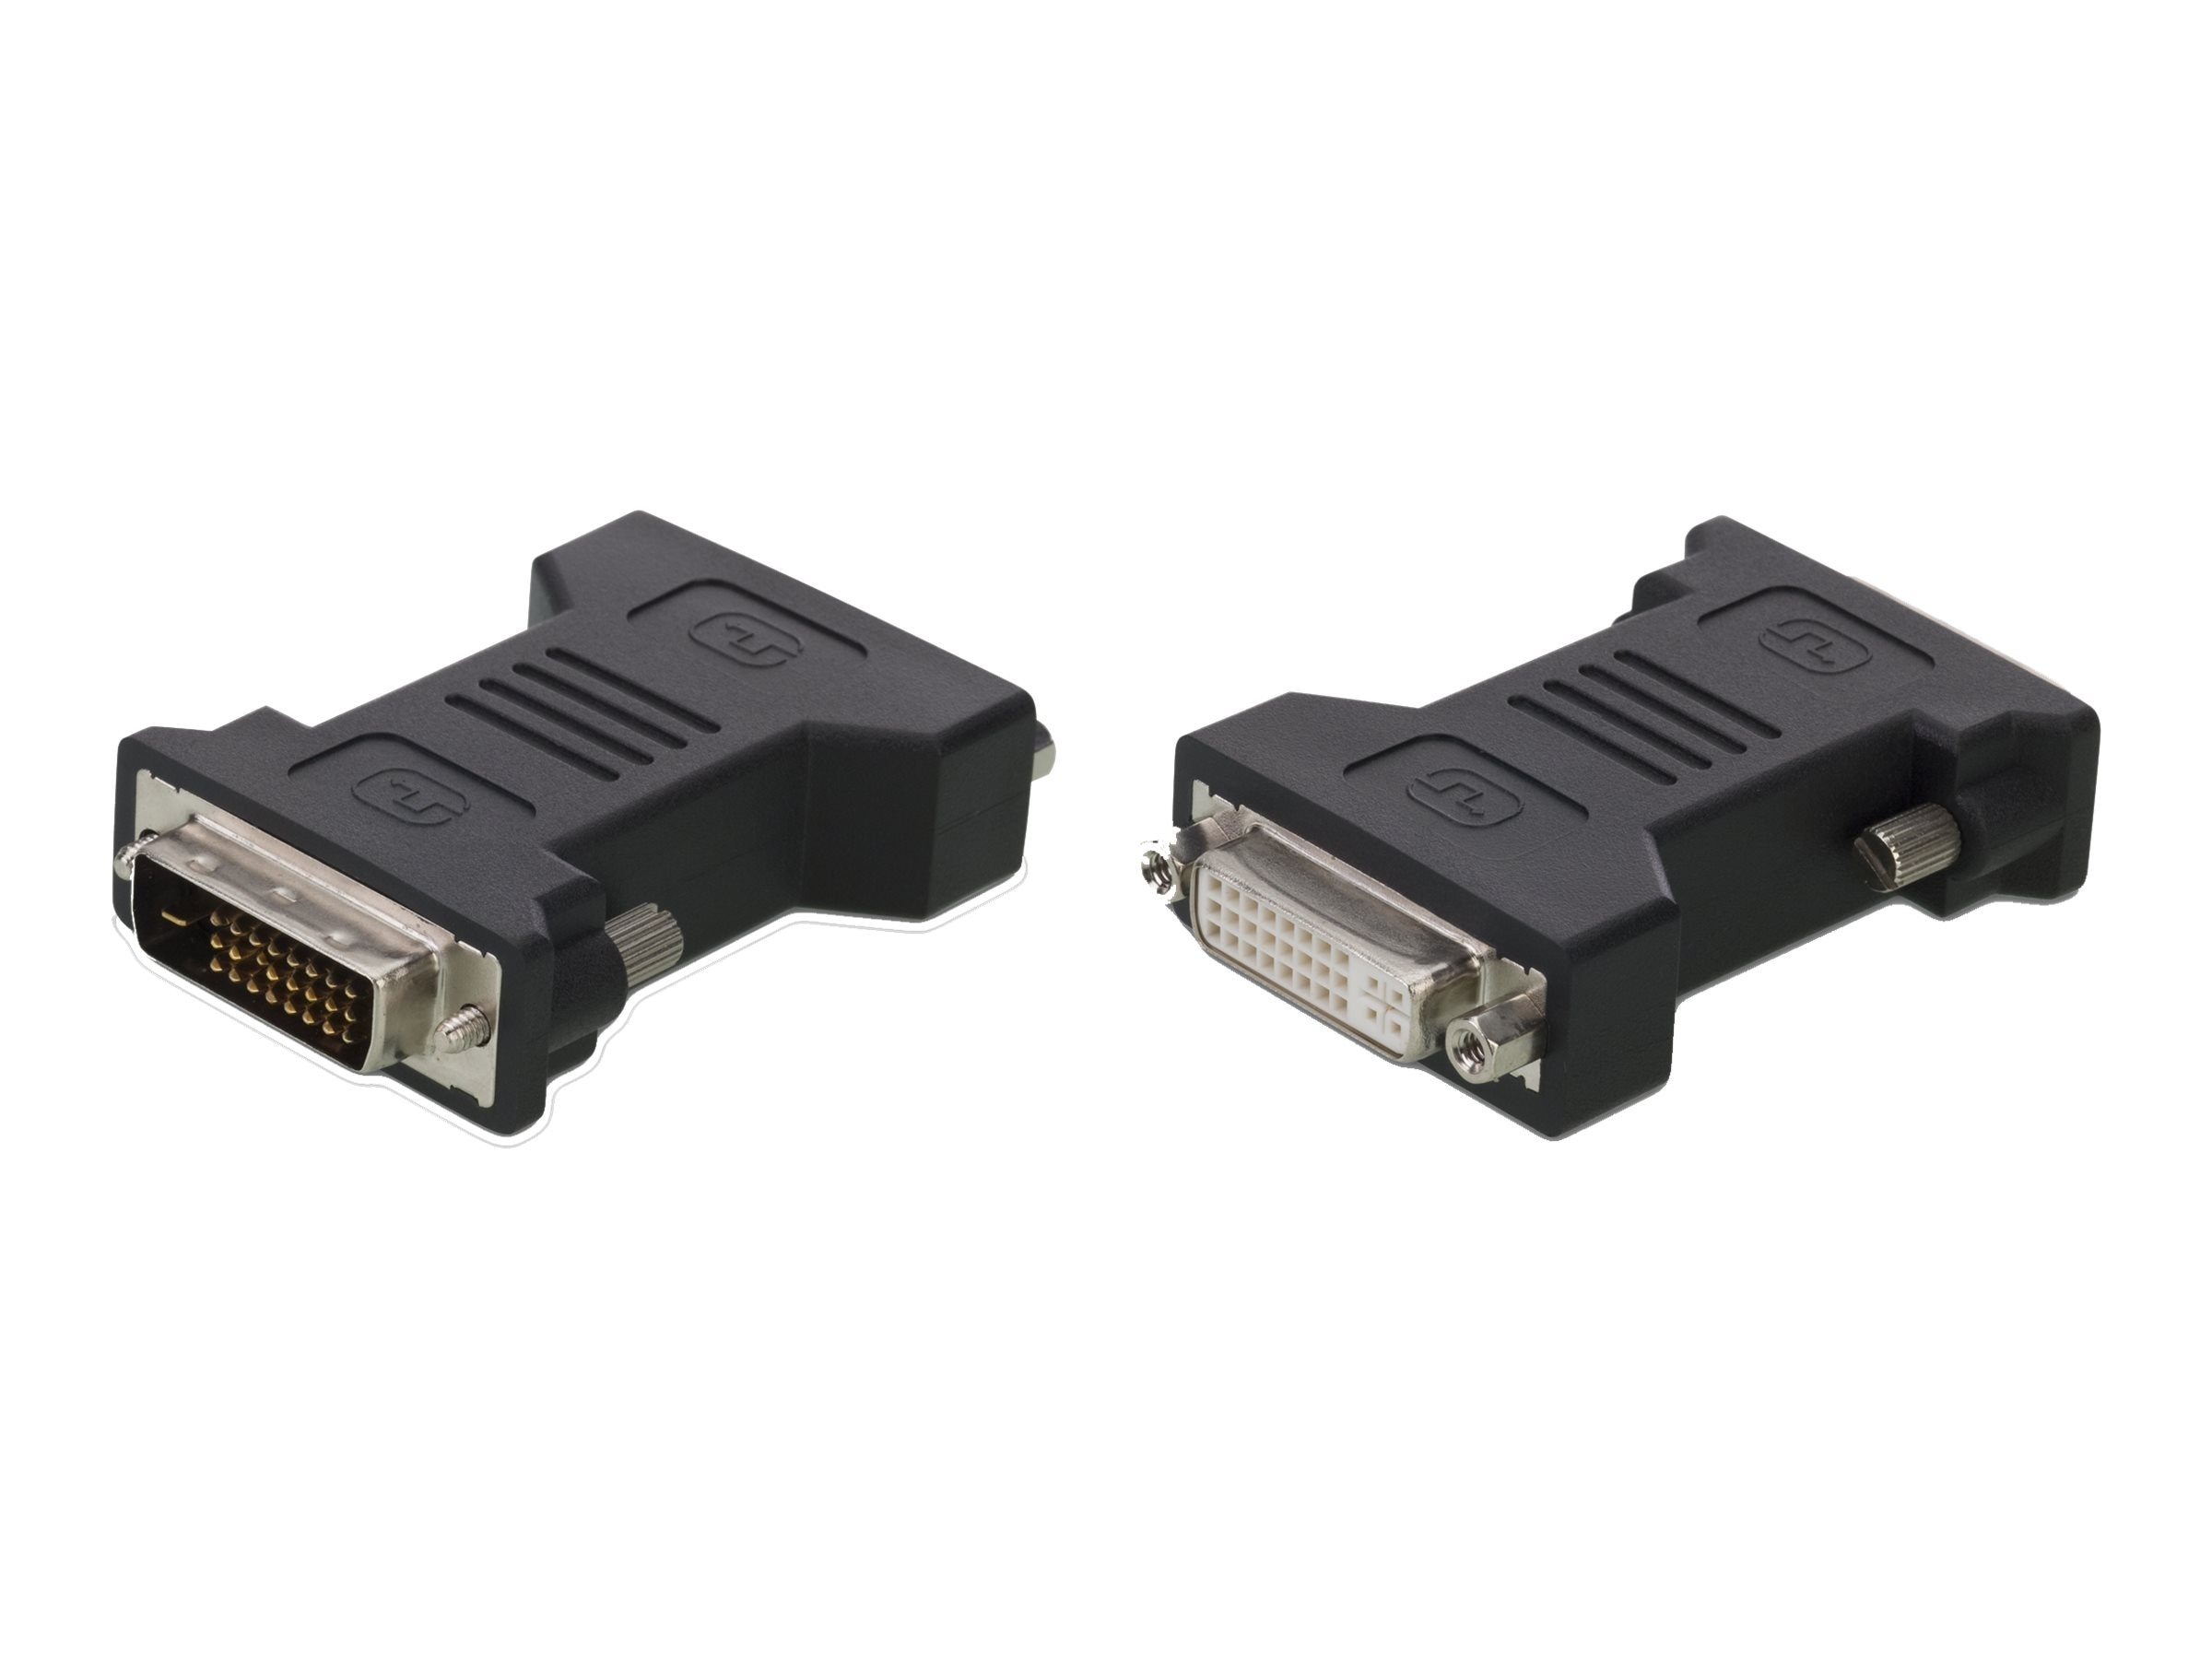 Belkin HDMI to DVI-I Dual Link Adapter, F2E0182-DV, 8326961, Adapters & Port Converters